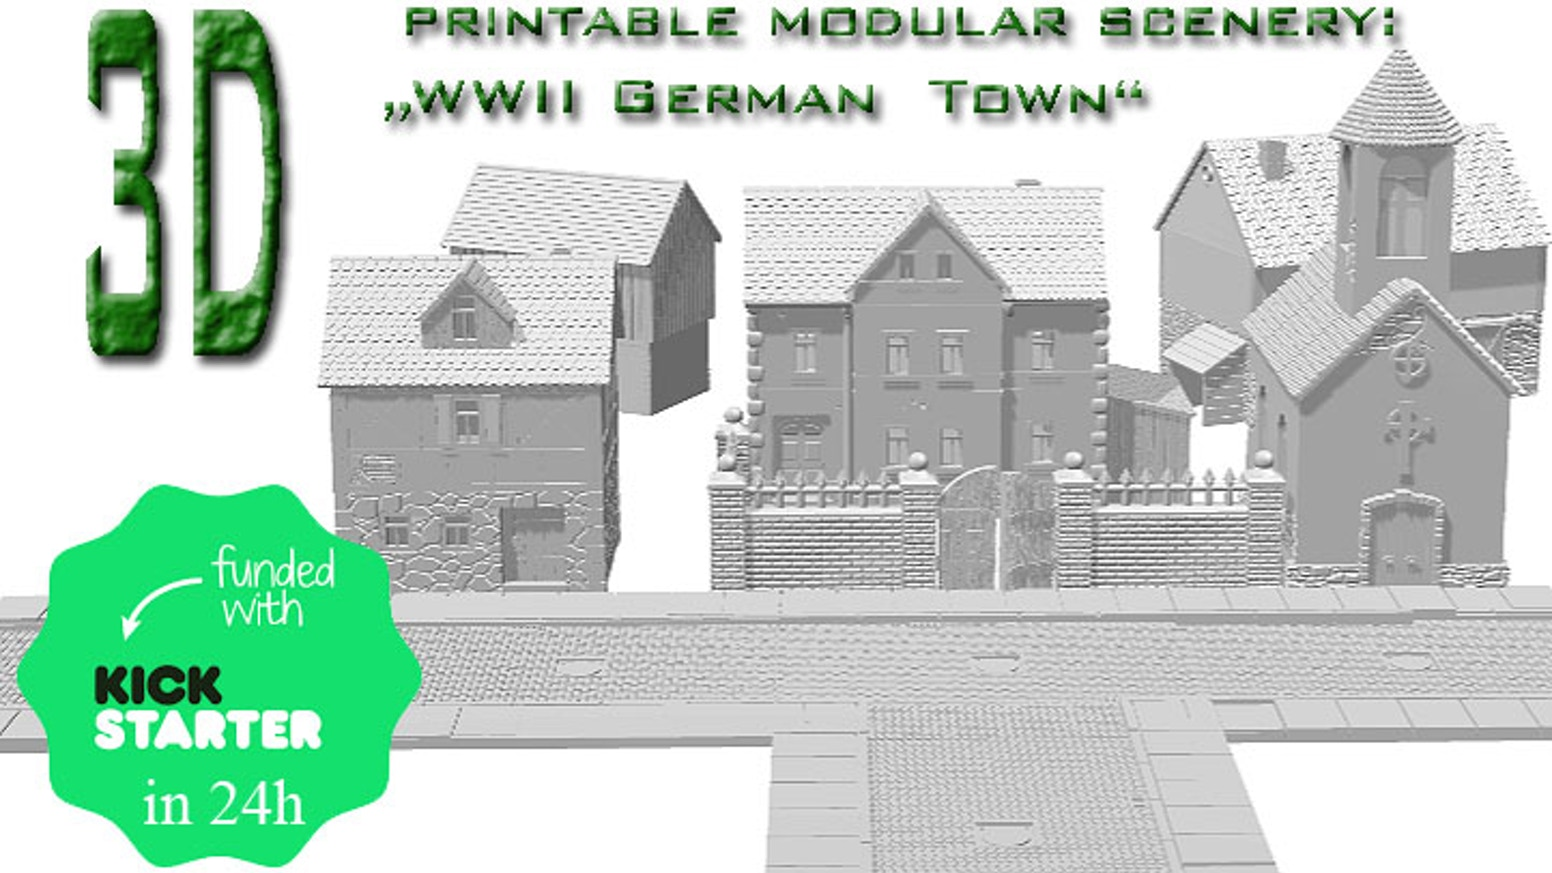 German Town World War II models (STL files) for printing on your own 3Dprinter (for scale 6mm to 30mm).